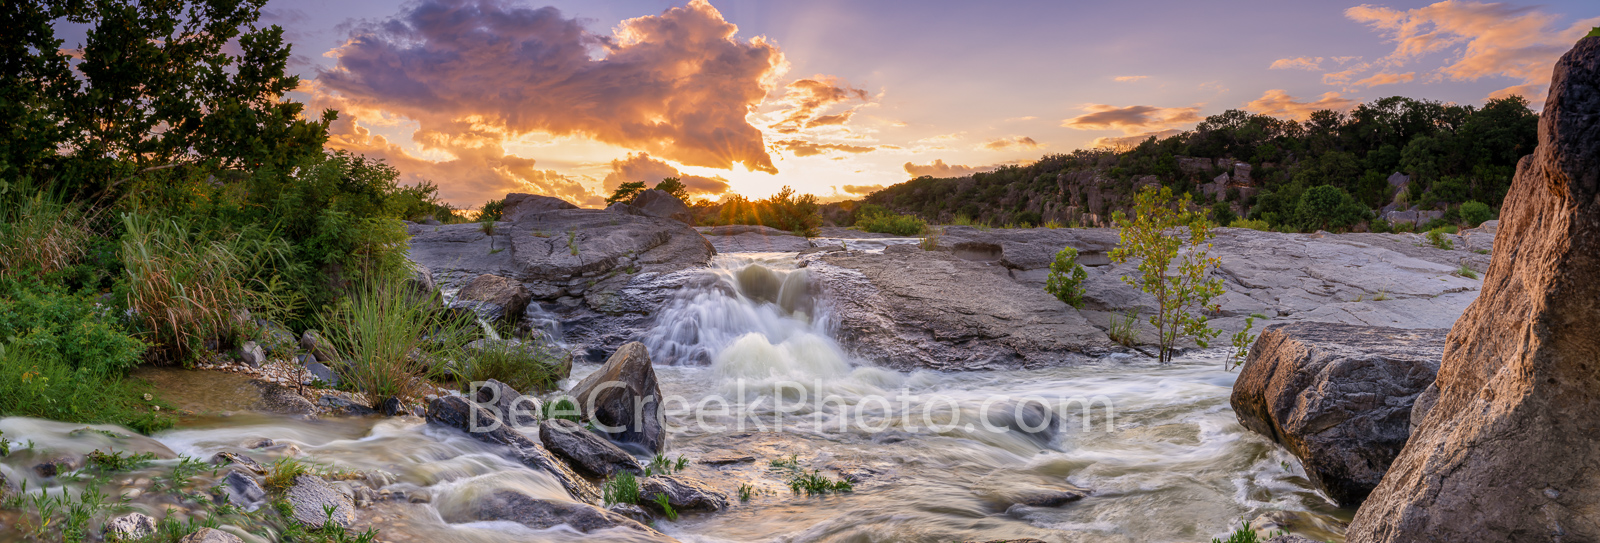 Pedernales Falls Panorama - Pedernales Falls located in the Texas Hill country in Blanco county near Johnson City. We have had...